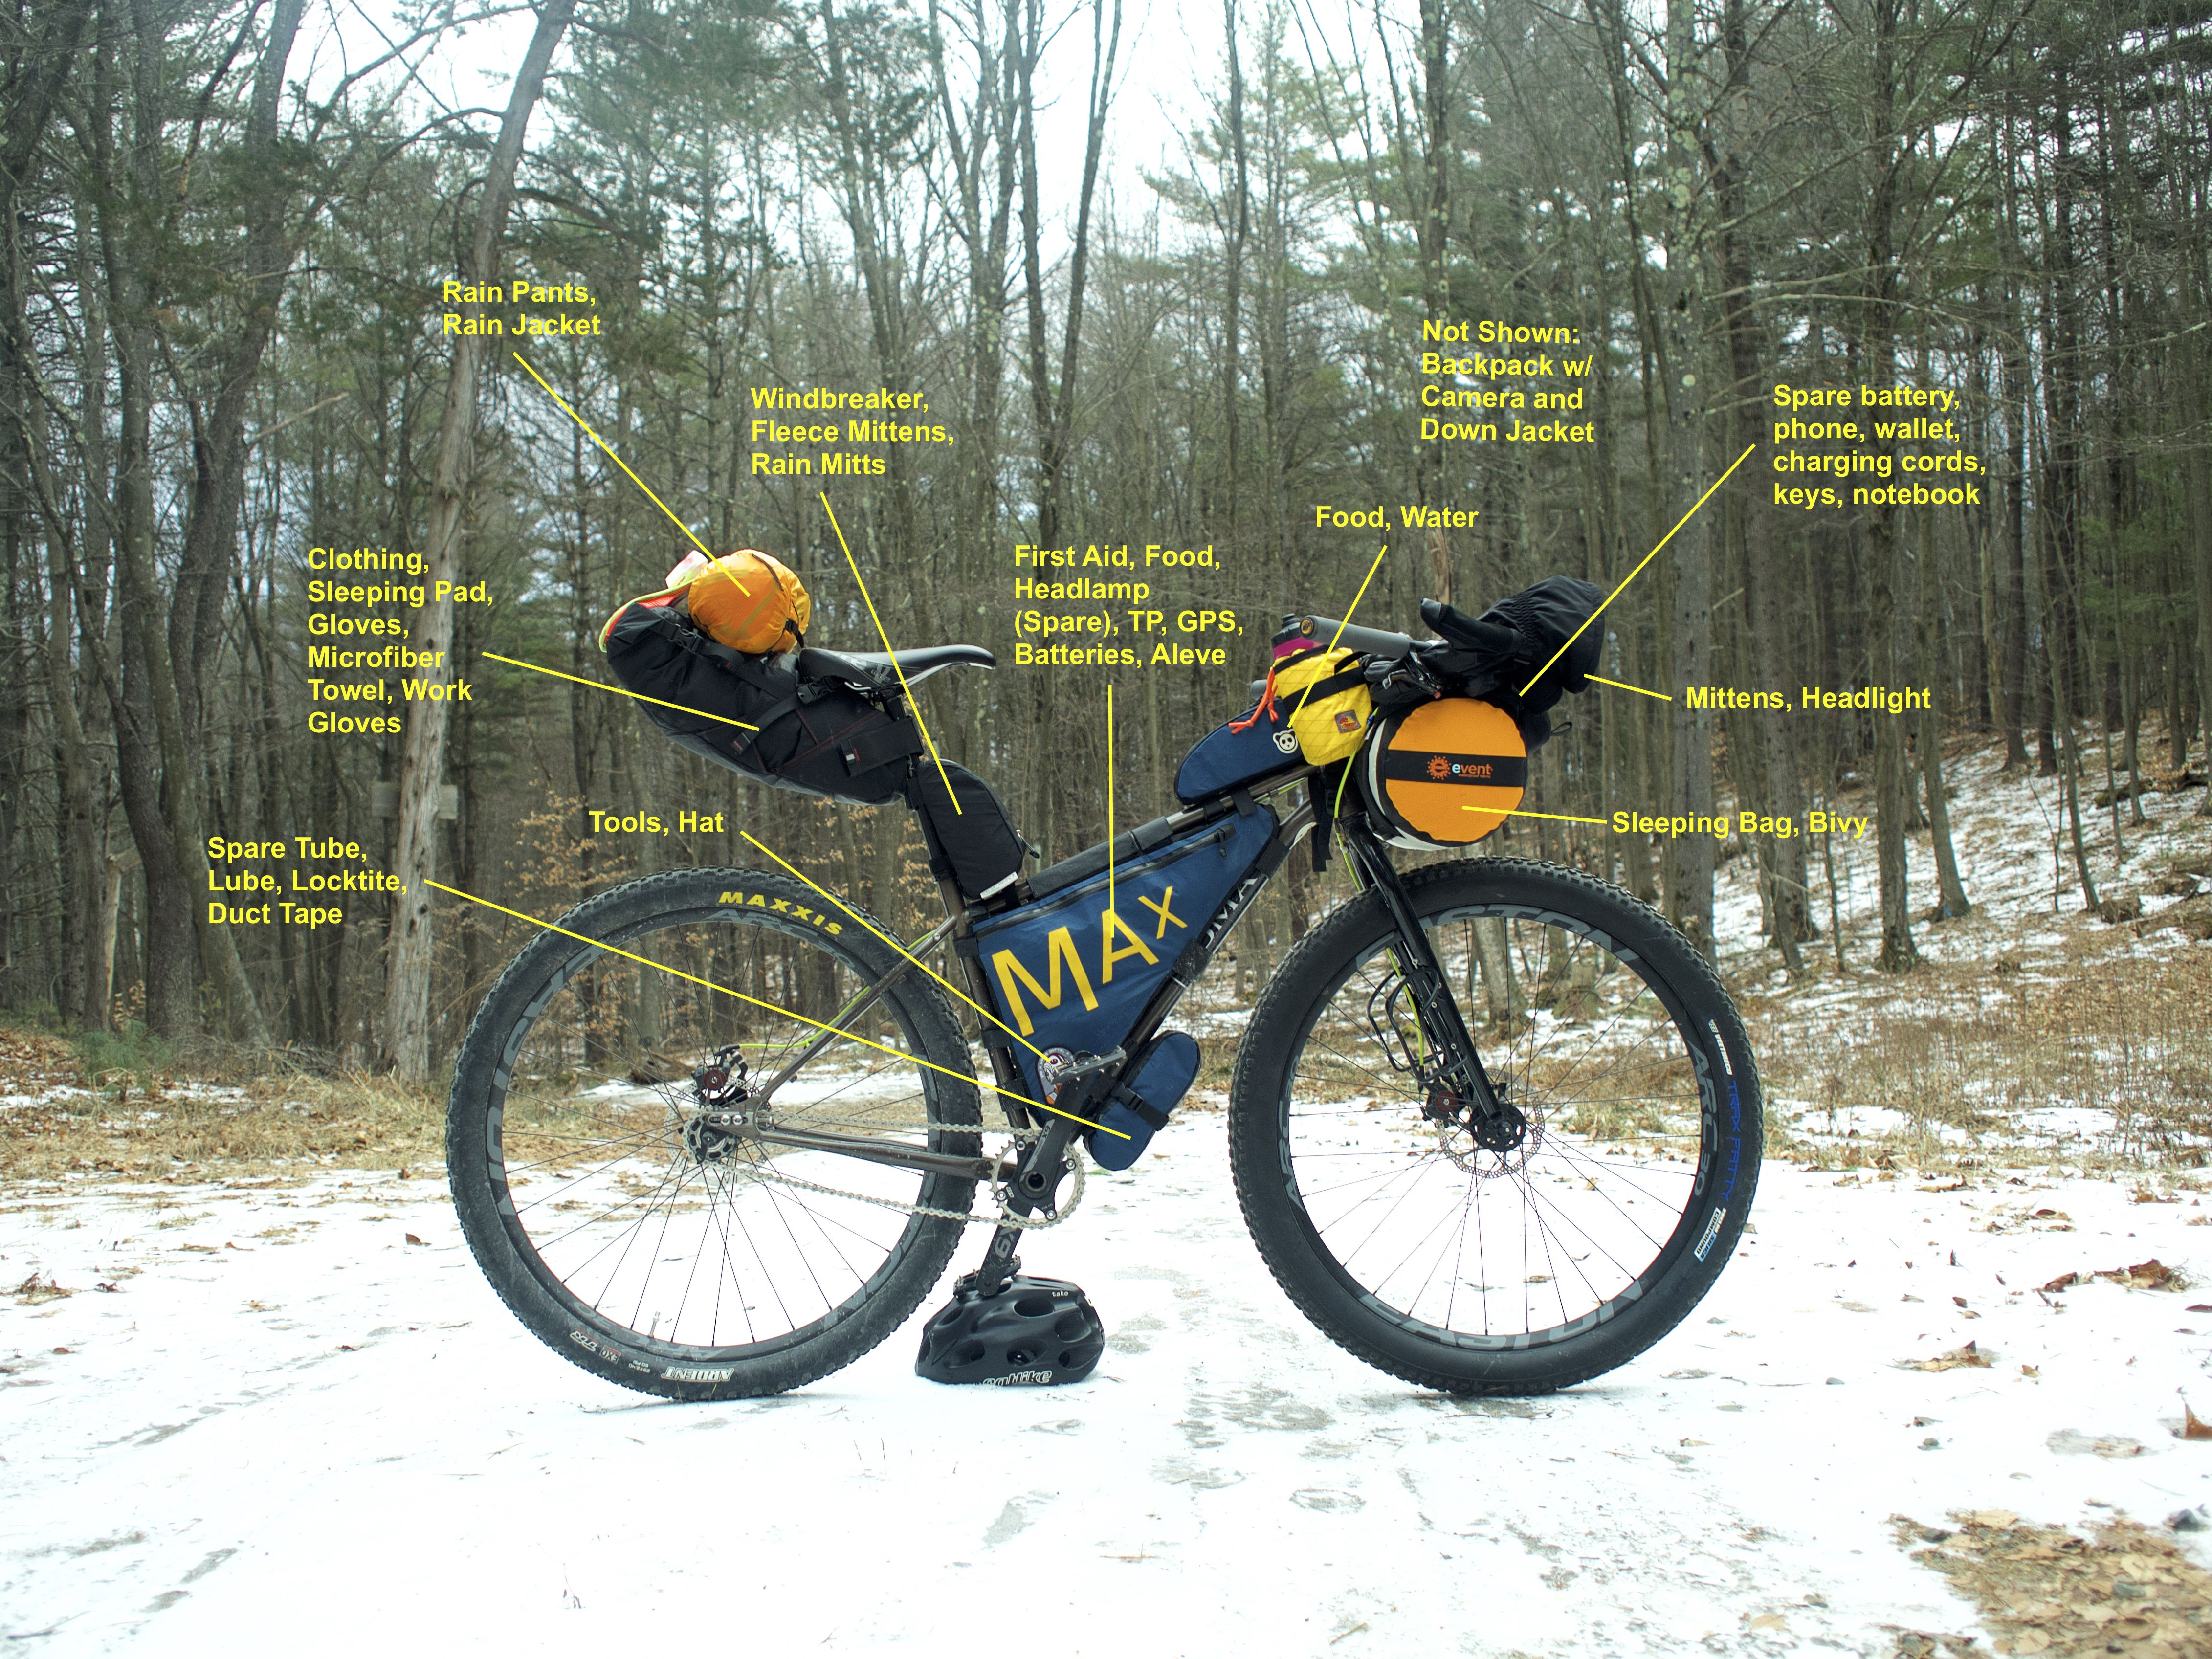 Bike packing bag experiences wanted | Bicy | Pinterest